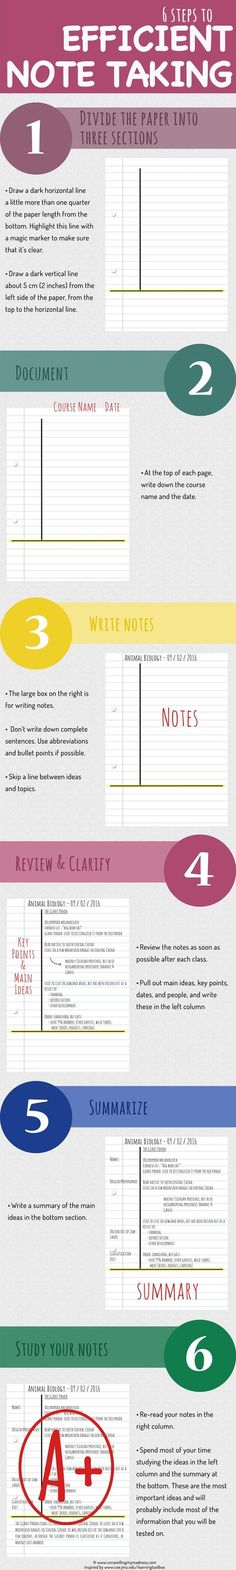 6 steps to efficiently taking notes